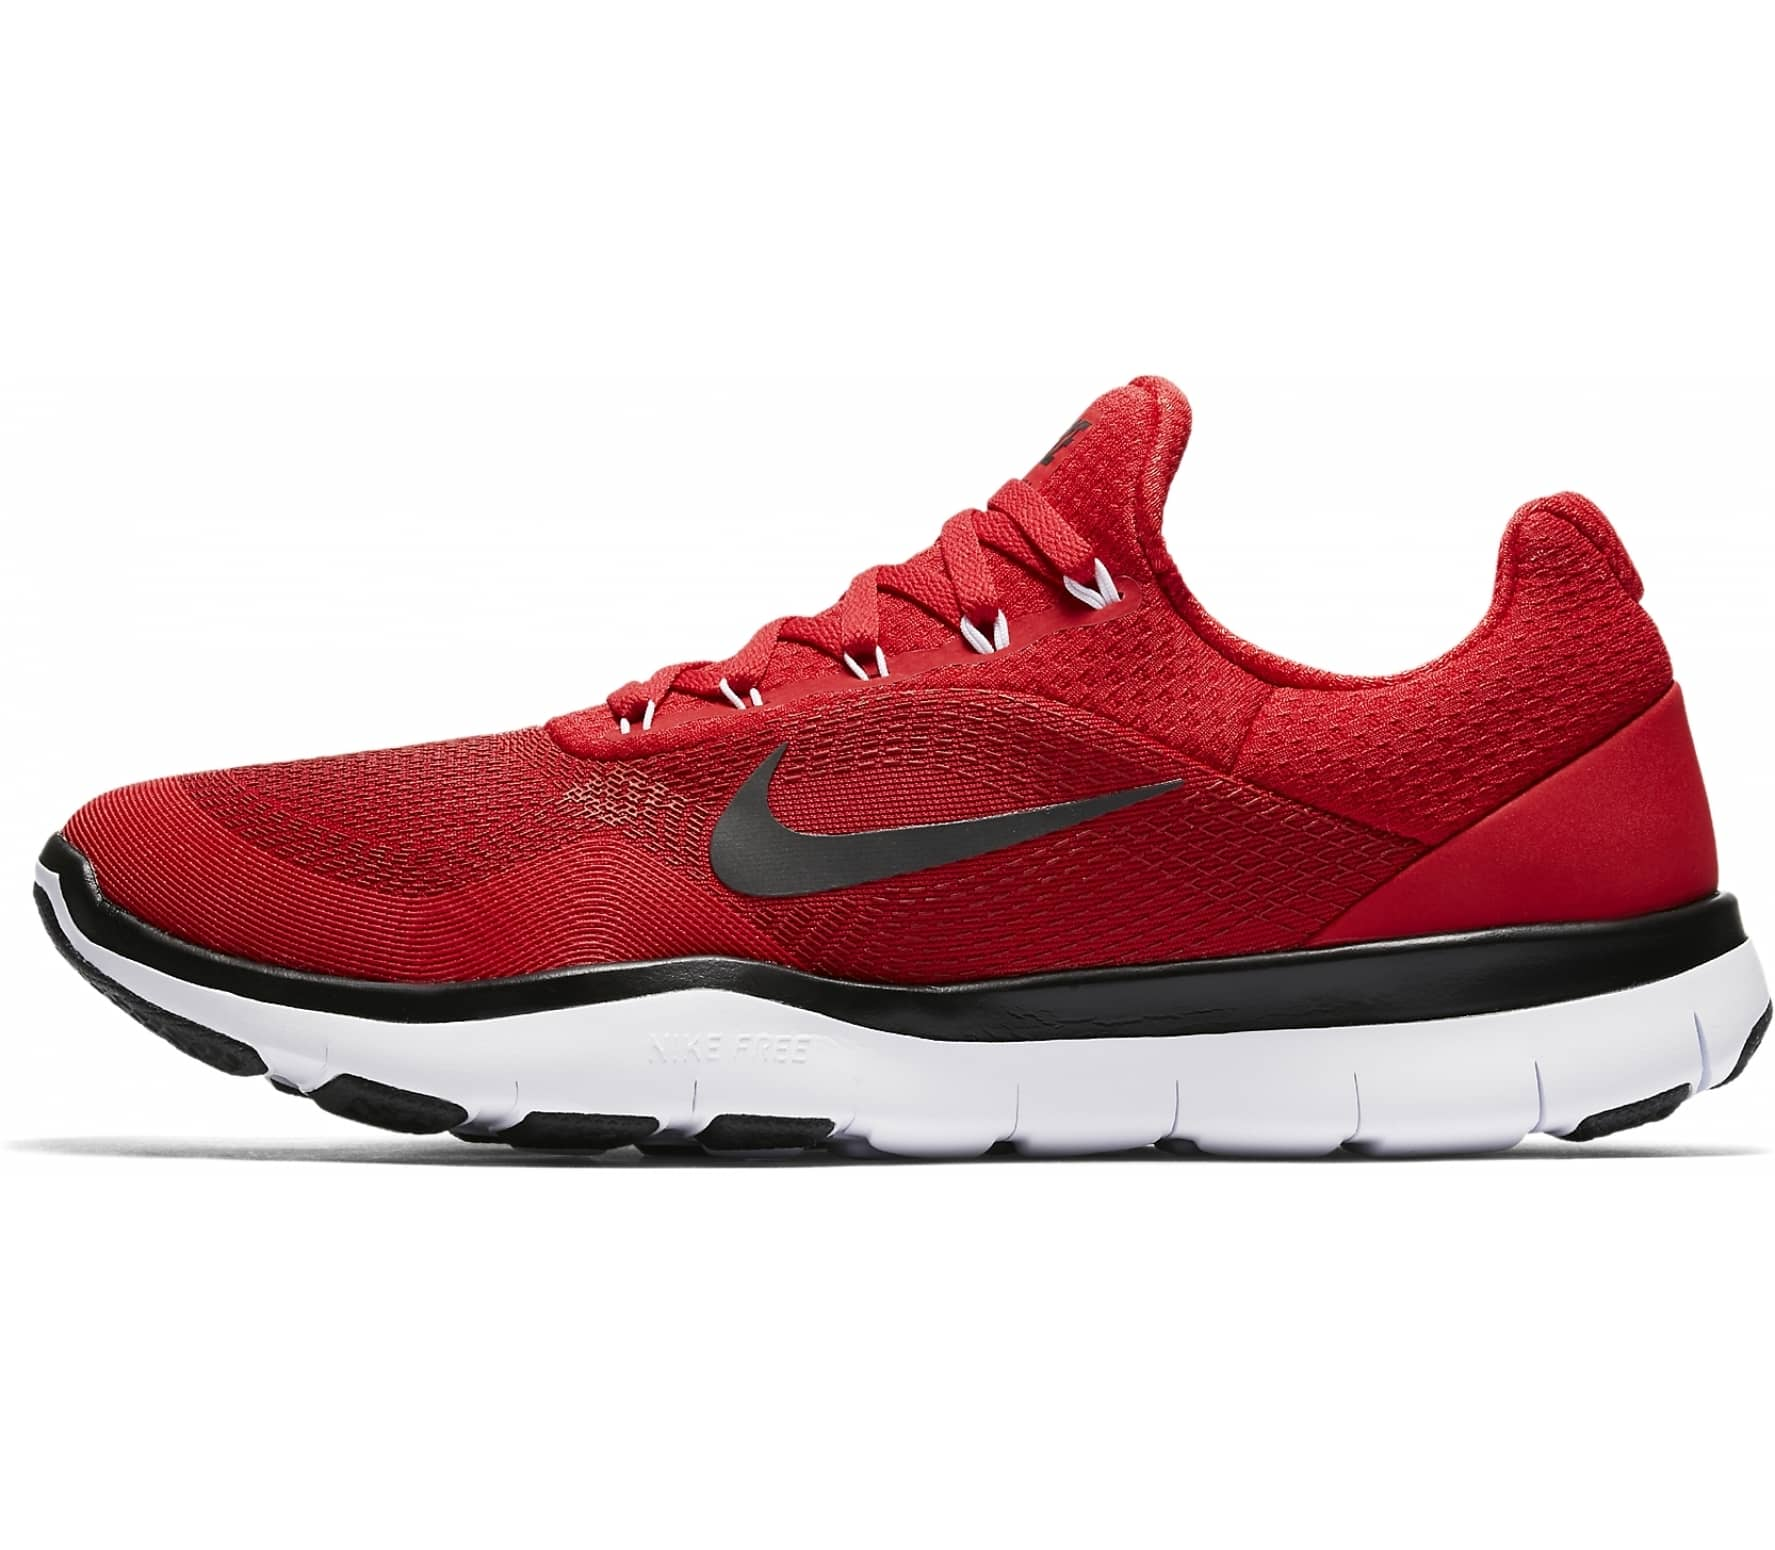 caf5b6a0671 Nike - Free Trainer V7 men s training shoes (red) - buy it at the ...